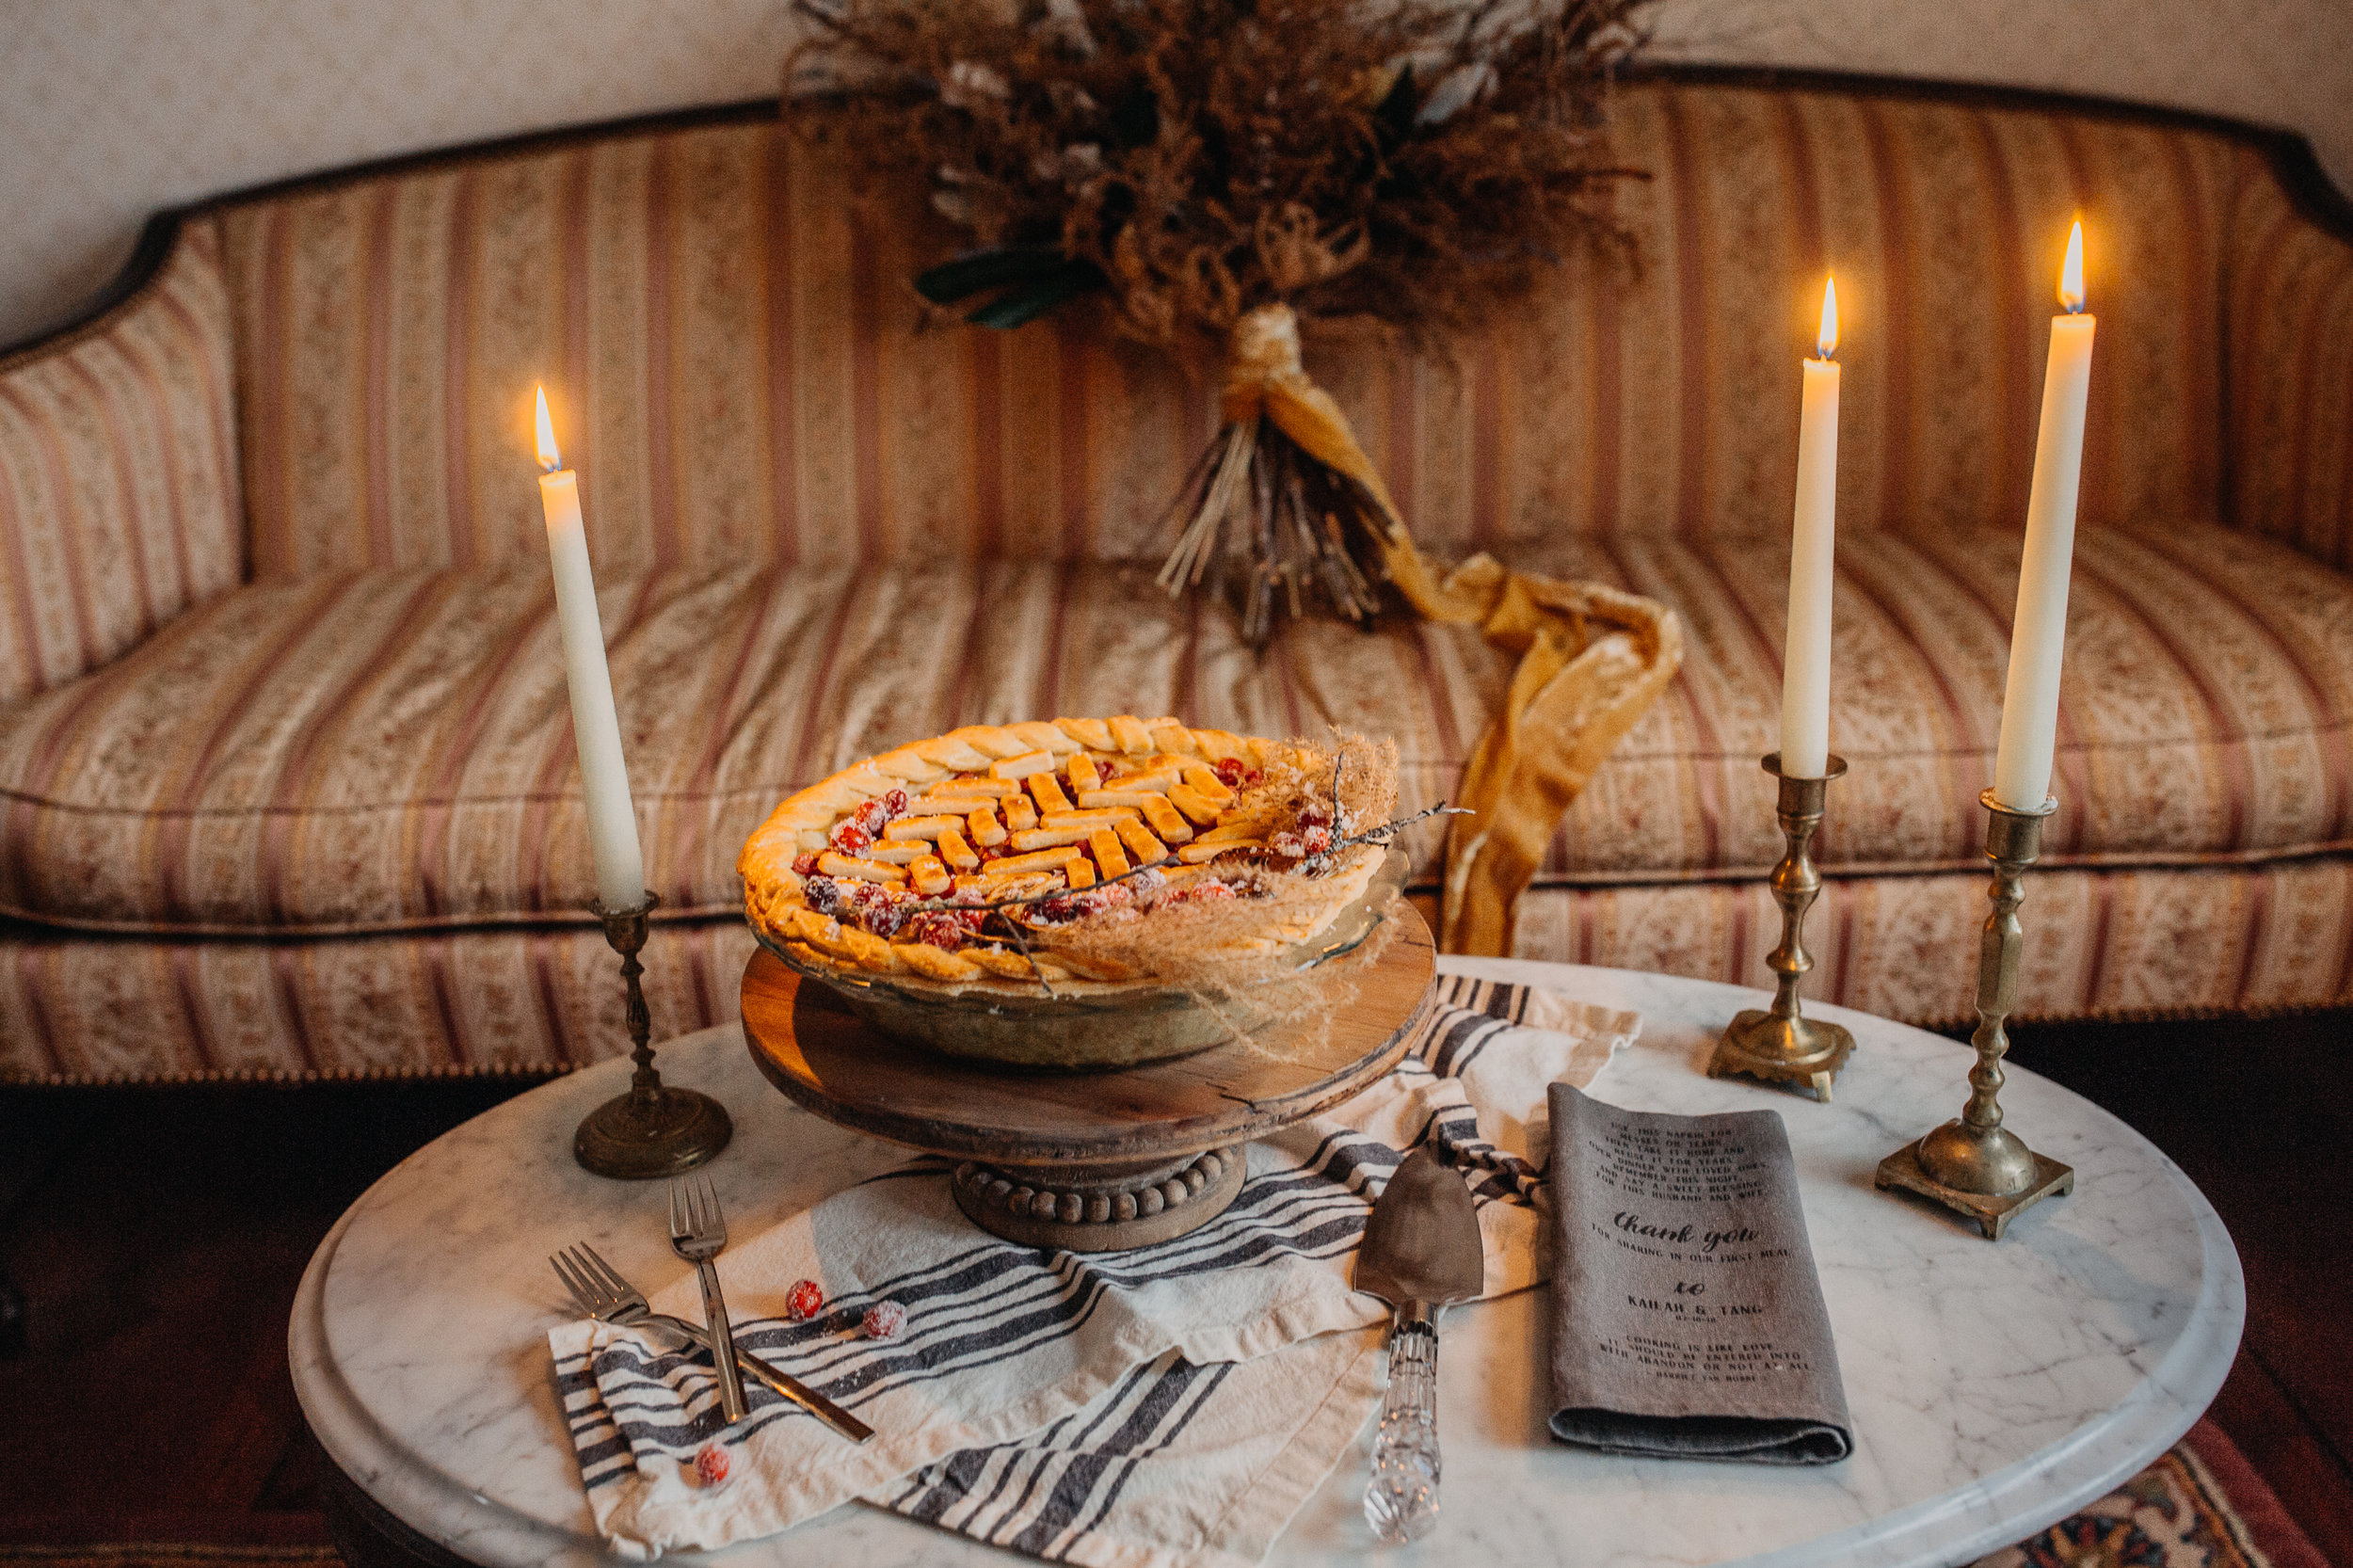 Cranberry homemade pie for the B & B fashionable Elopement in January - Pearl Weddings & Events